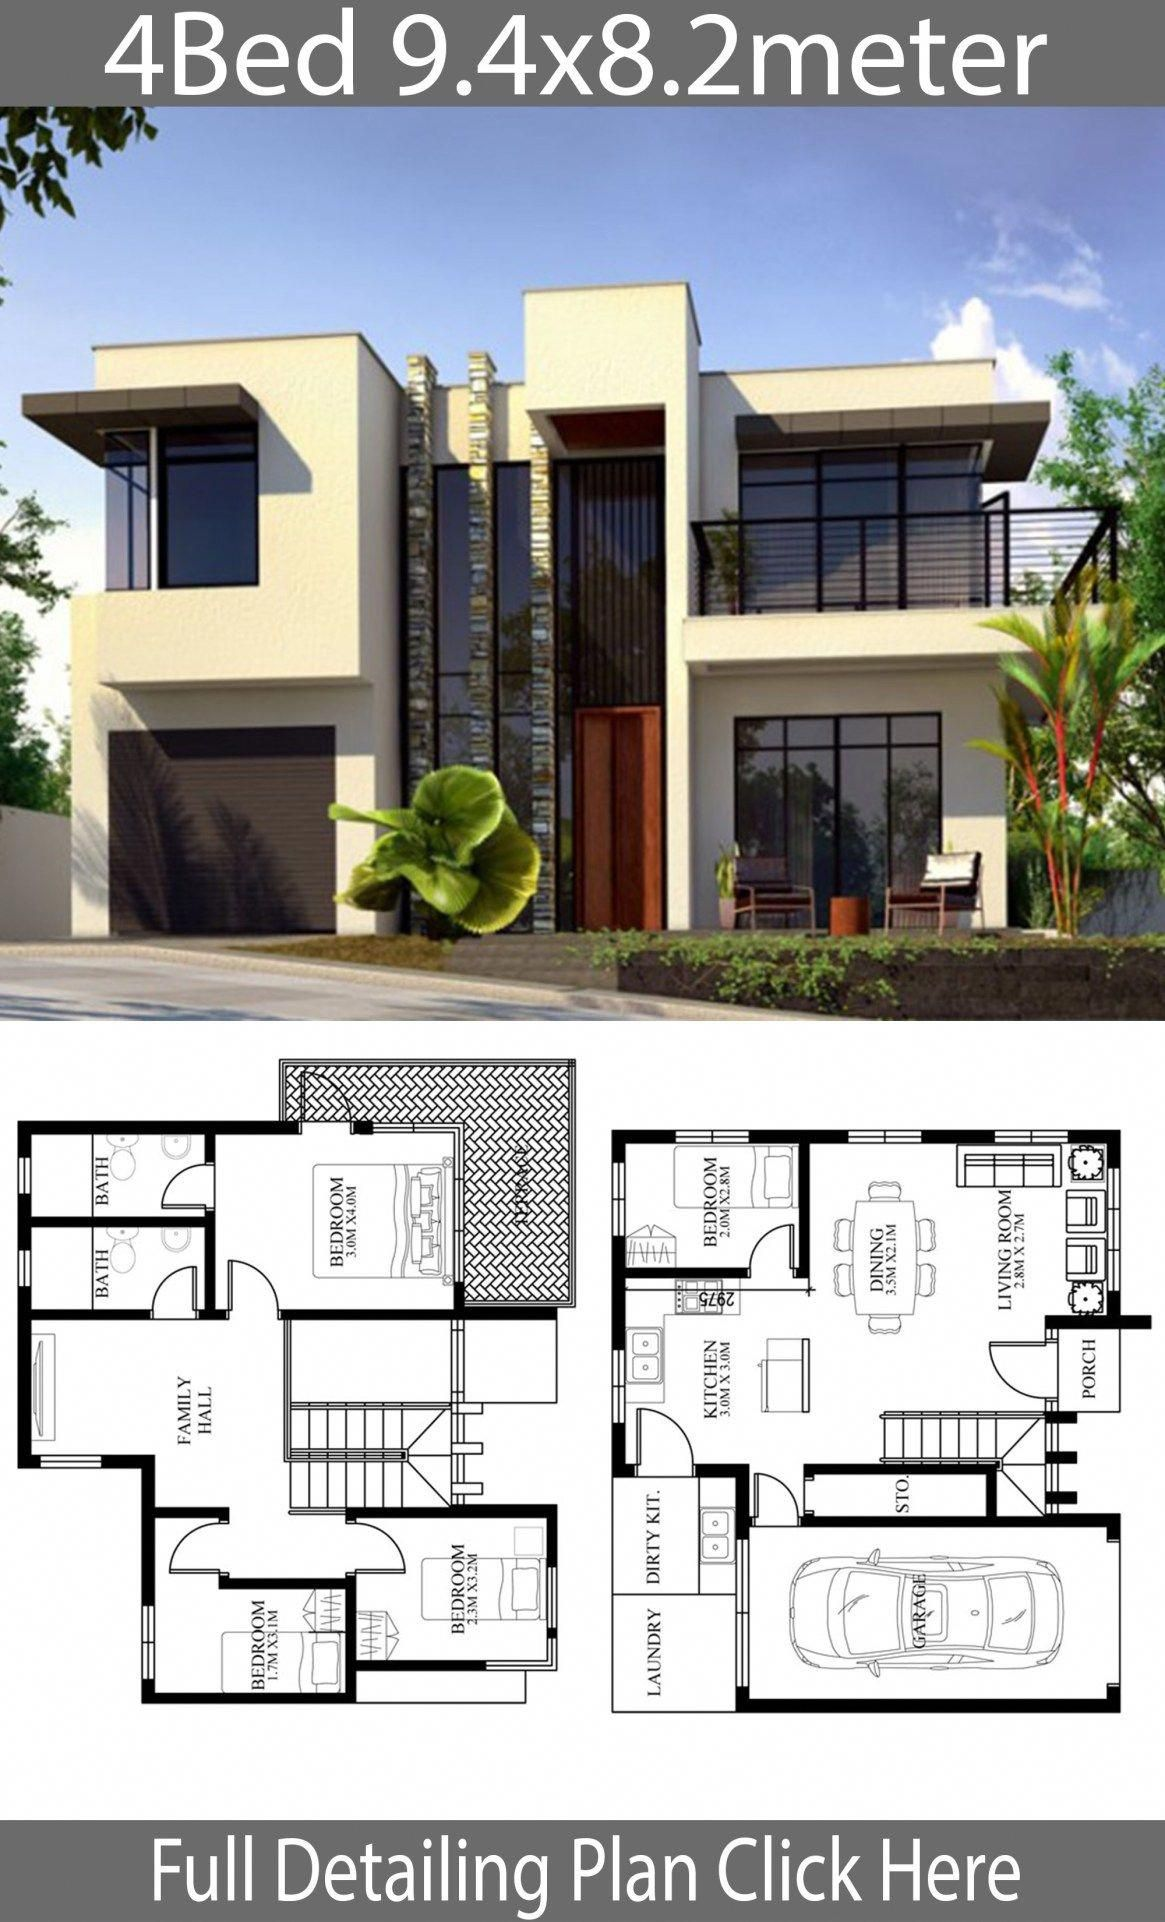 Small Home Design Plan 9 4x8 2m With 4 Bedrooms Home Design With Plansearch Besthomeinteri House Construction Plan Model House Plan Modern Style House Plans